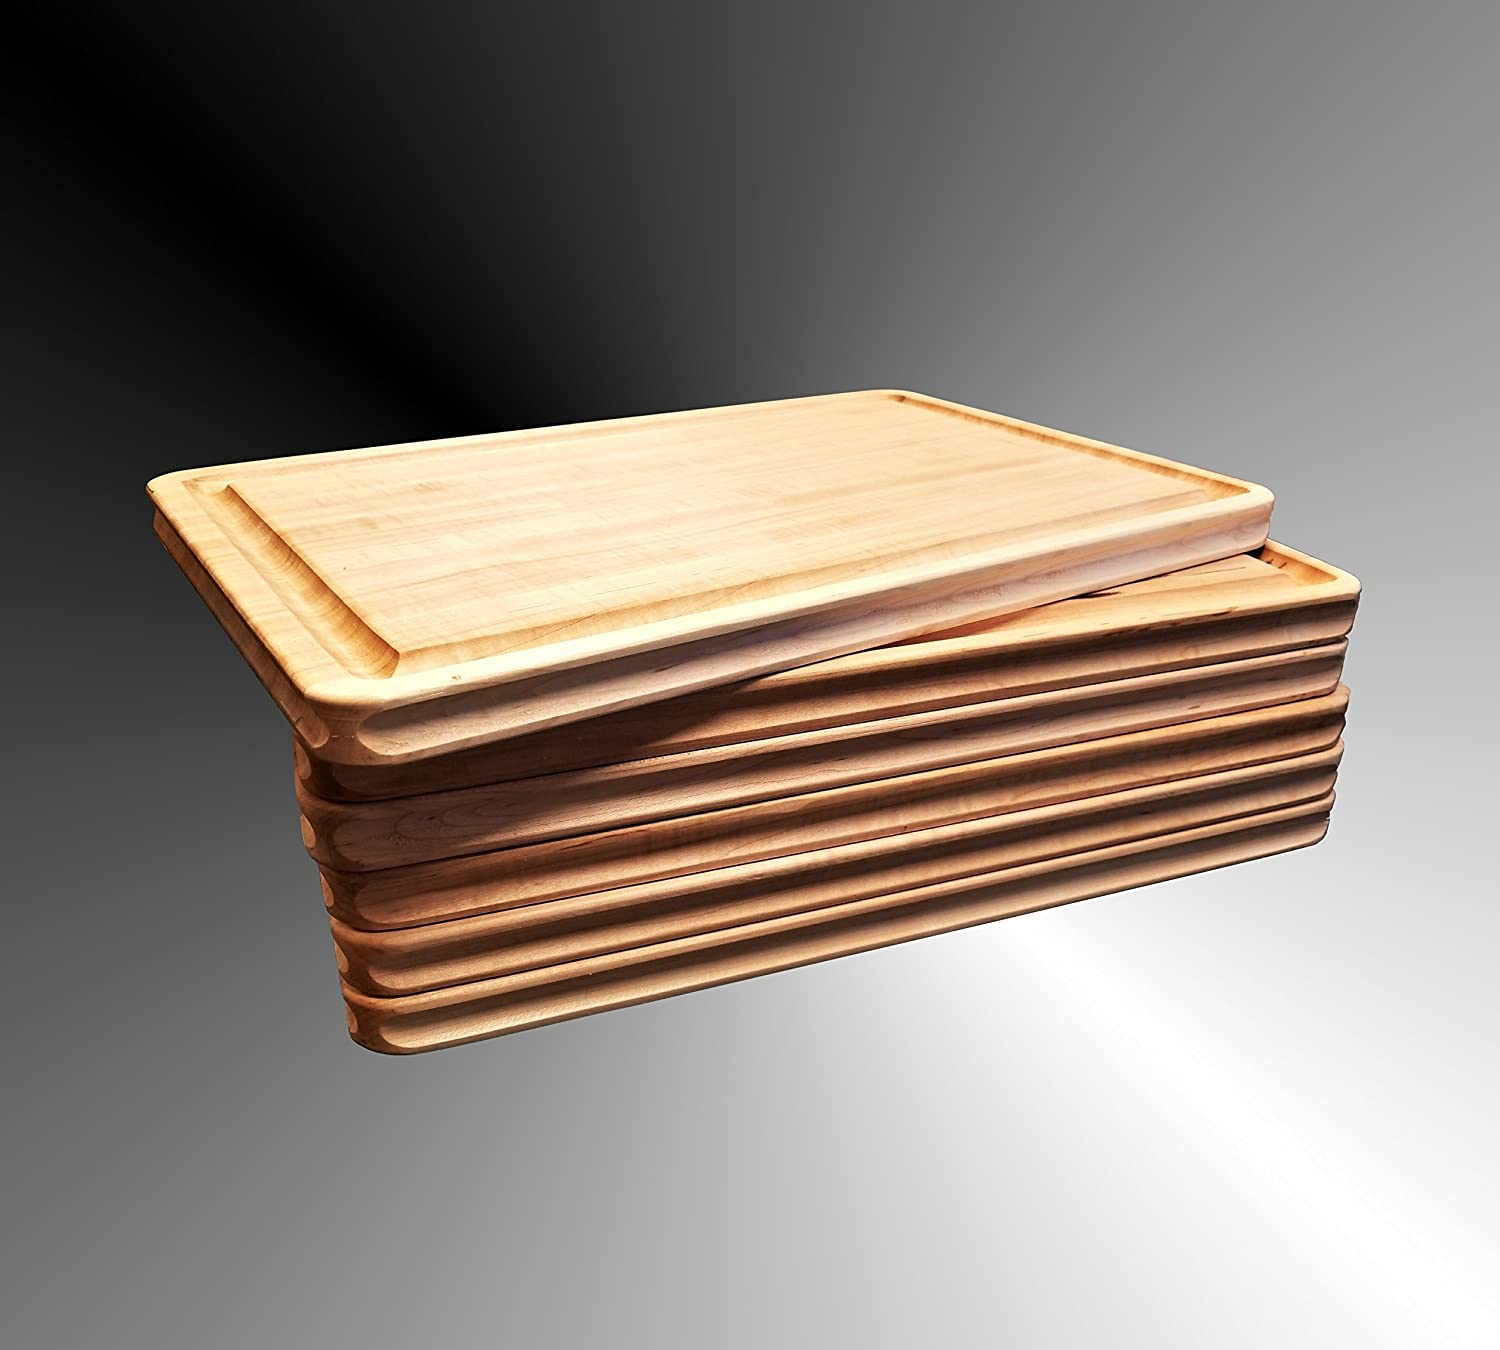 Maple Wood Cutting Board Edge Grain 24 x 18 x 1 Inches, Reversible, with Deep Well Juice Groove, Carved Inset Handles Grip, Handmade By Pacific Wood in The USA.